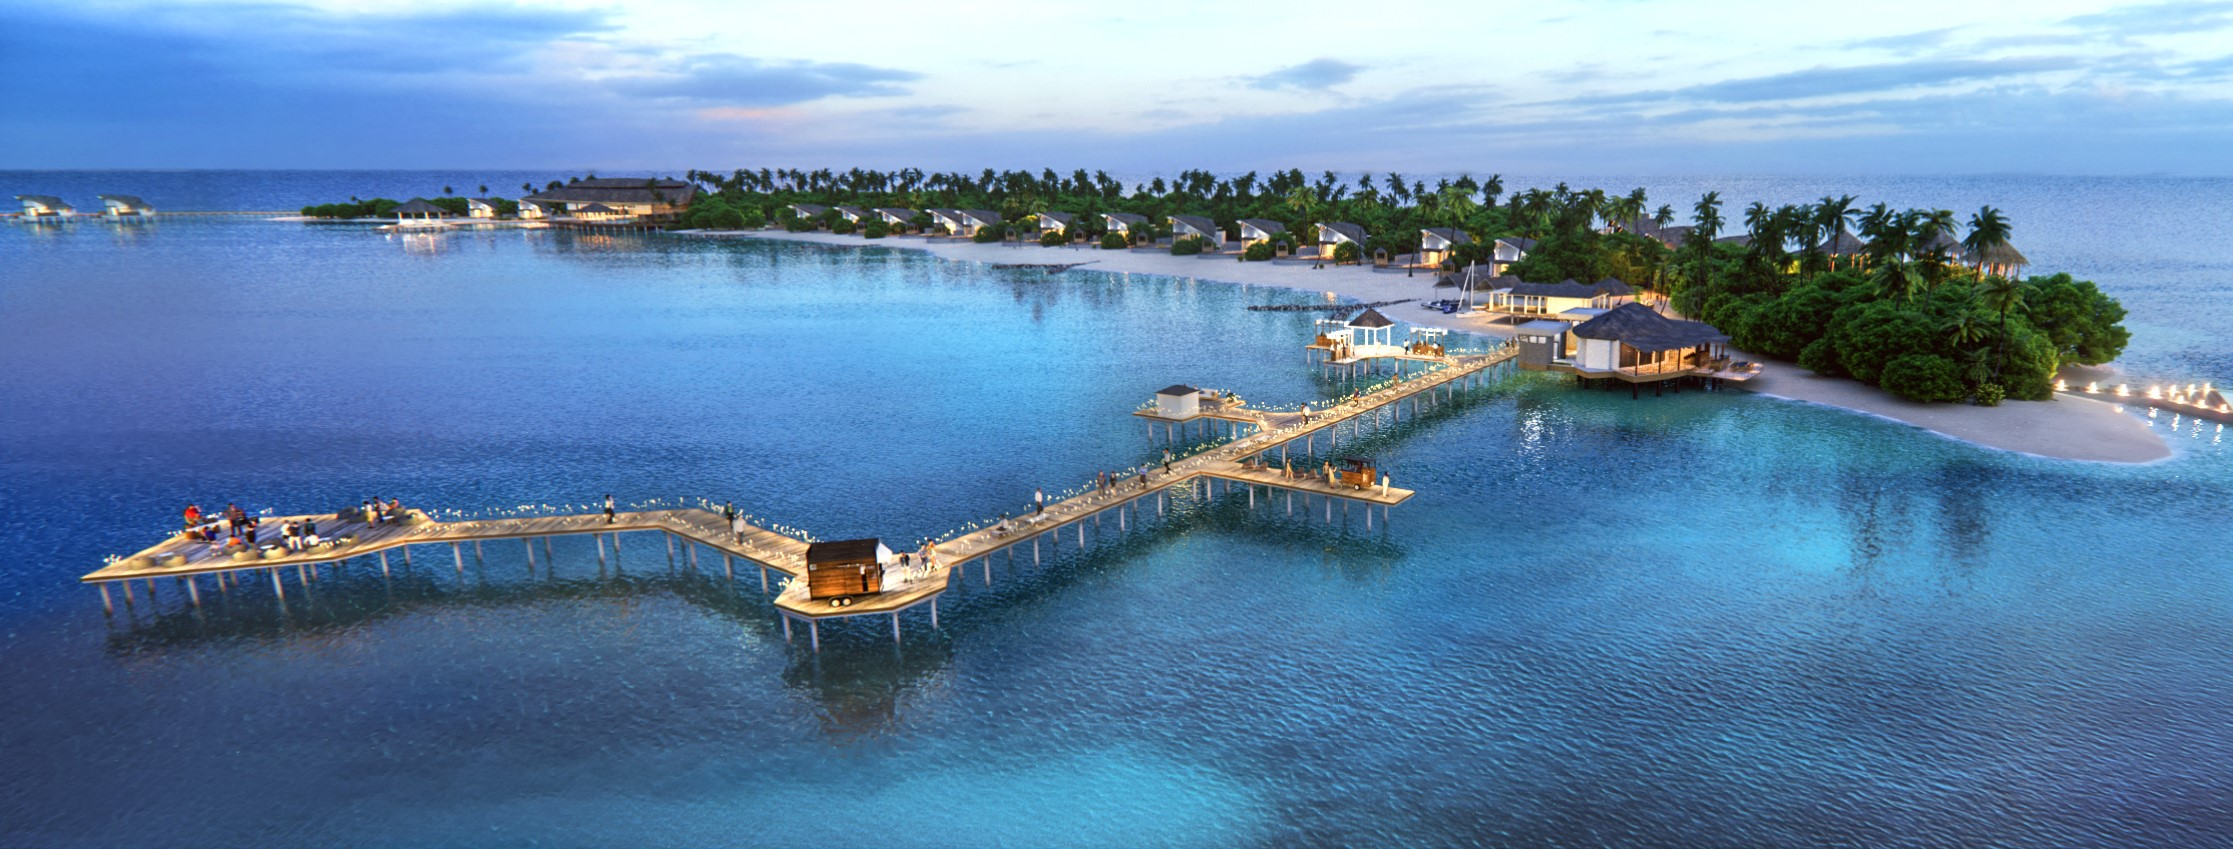 JW Marriott Maldives – Island South - Revised